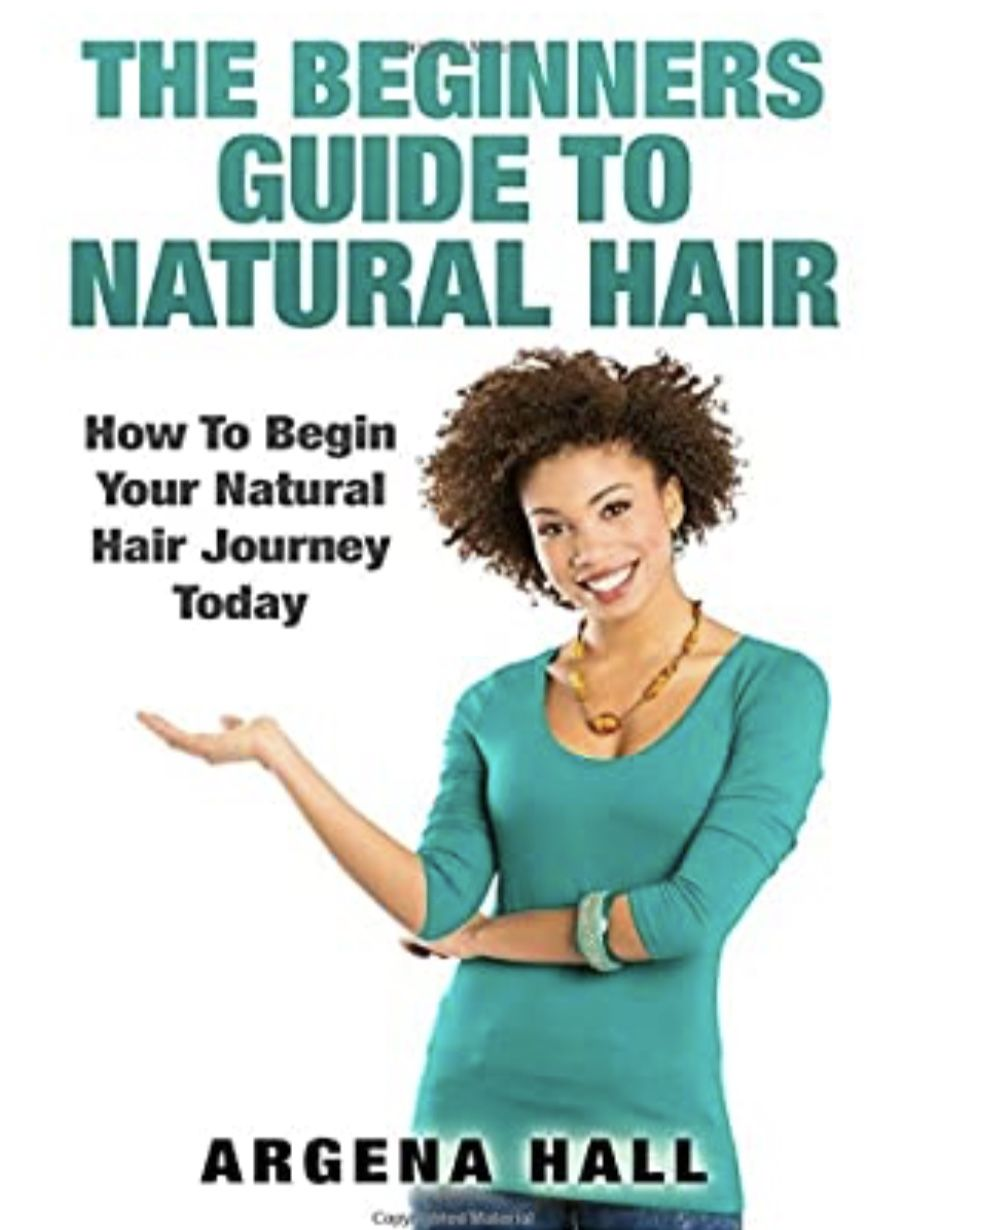 Free ebook The Beginners Guide To Natural Hair: How To Begin Your Natural Hair Journey Today